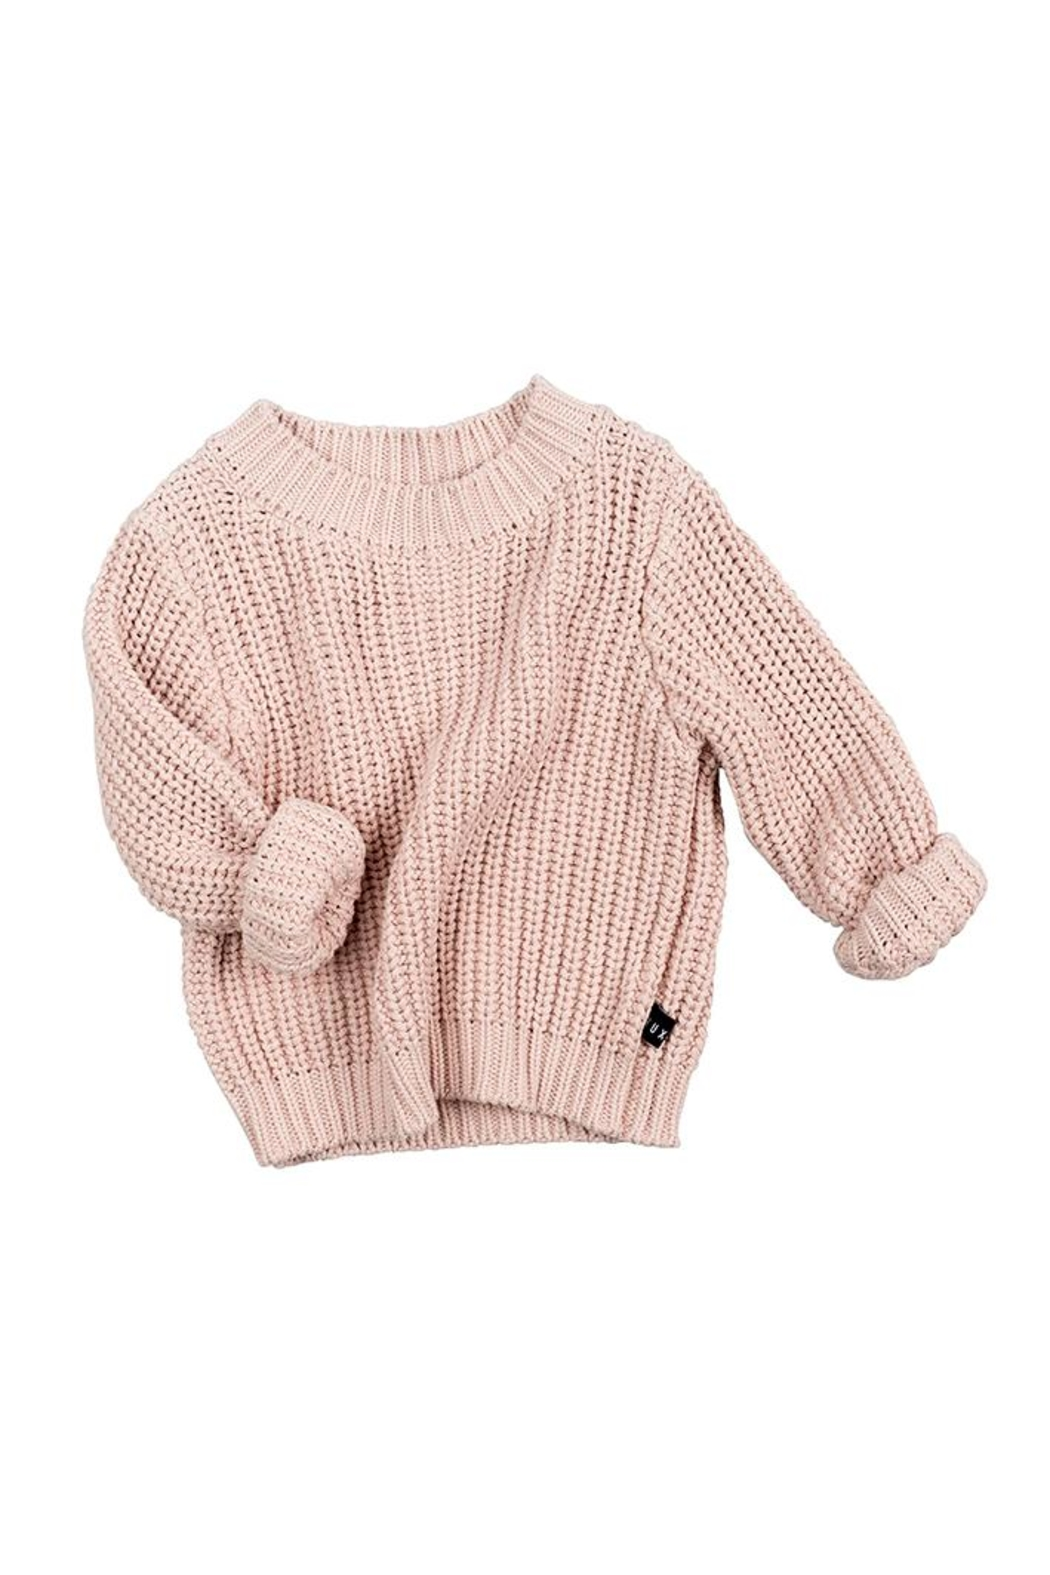 Huxbaby Chunky Knit Sweater - Front Full Image